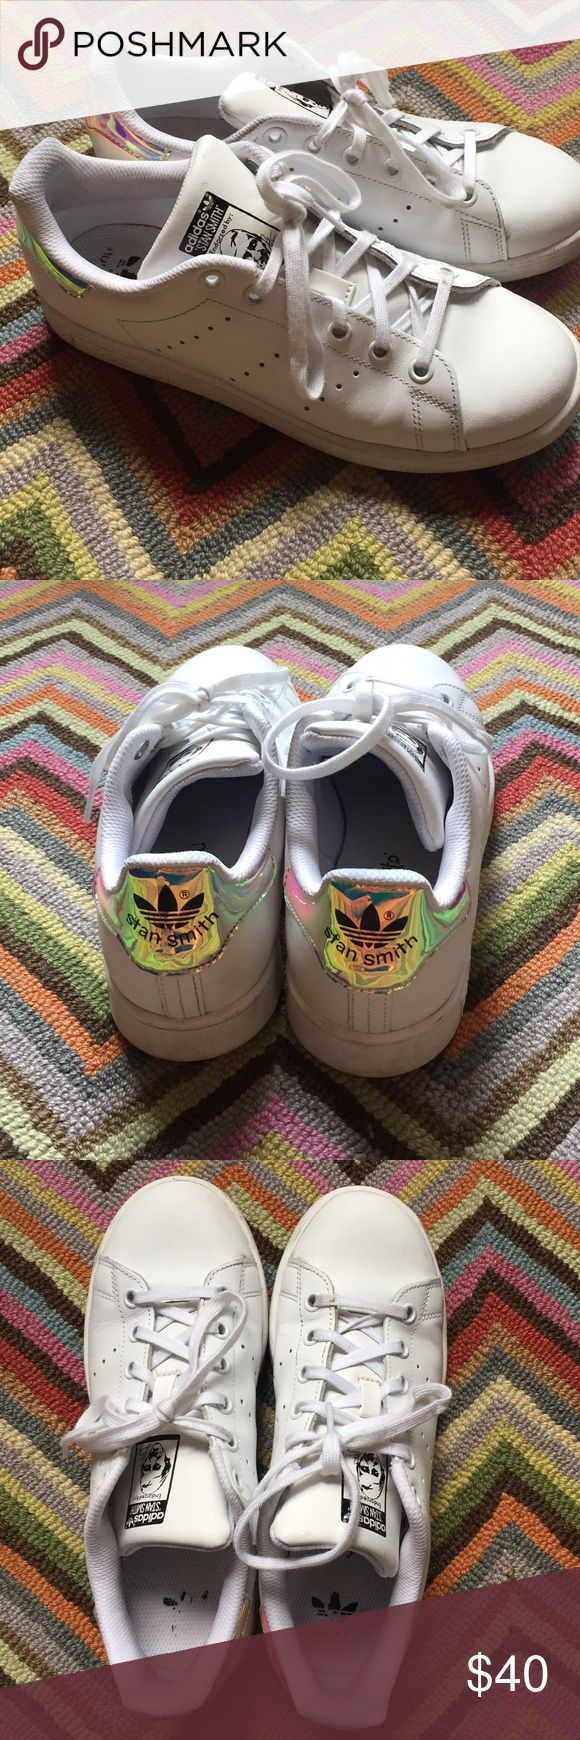 Stan Smith Sneakers with Iridescent heel LIMITED EDITION AND HARD TO FIND STAN SMITHS! Adidas Shoes Sneakers